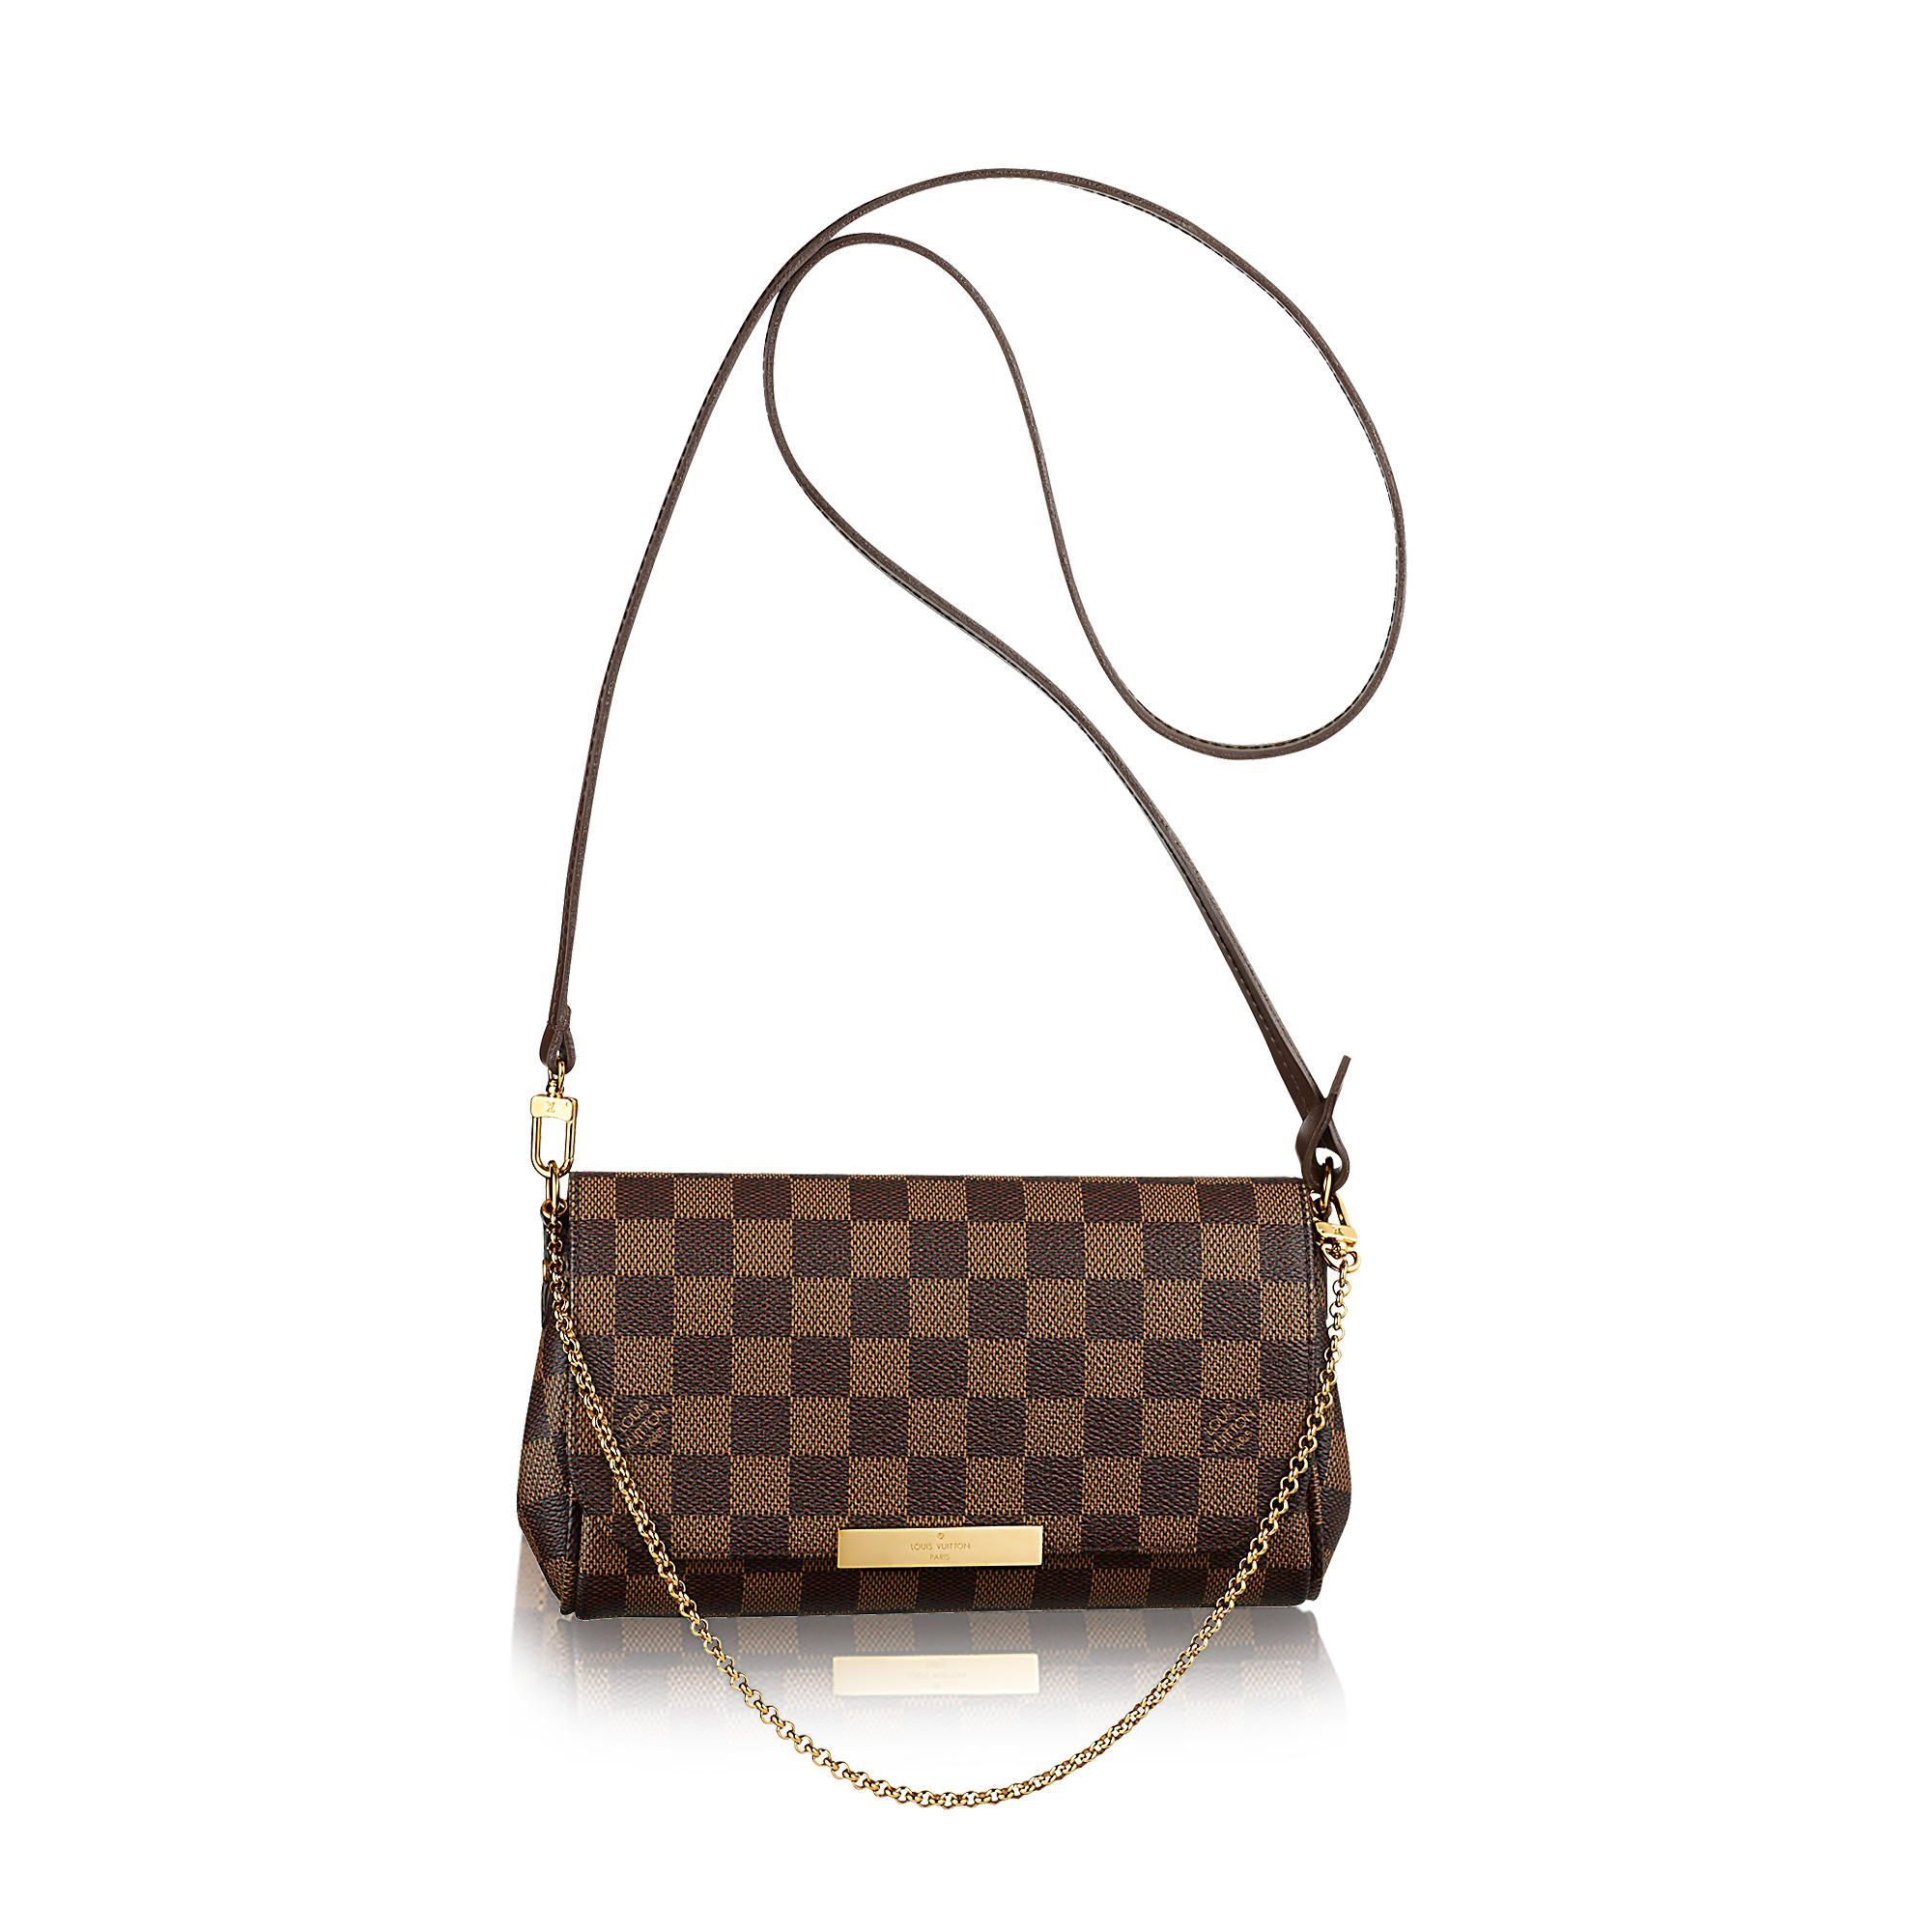 6ca1783c3d9a9 From Philip Louis Vuitton Favorite PM via Louis Vuitton I need a new  crossbody from Santa  )